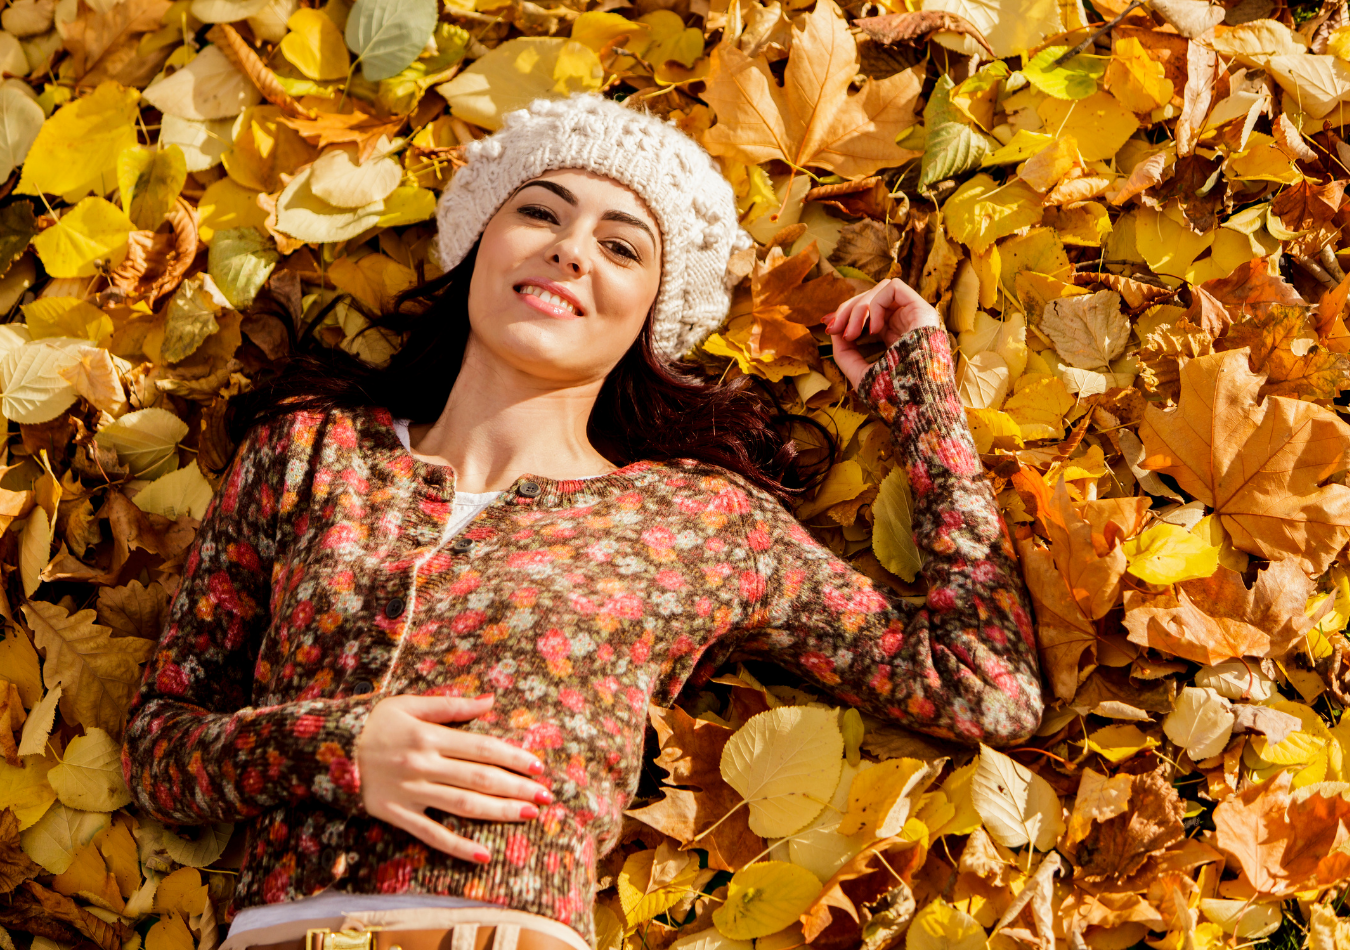 Declare your eternal love for autumn. Or for someone else!